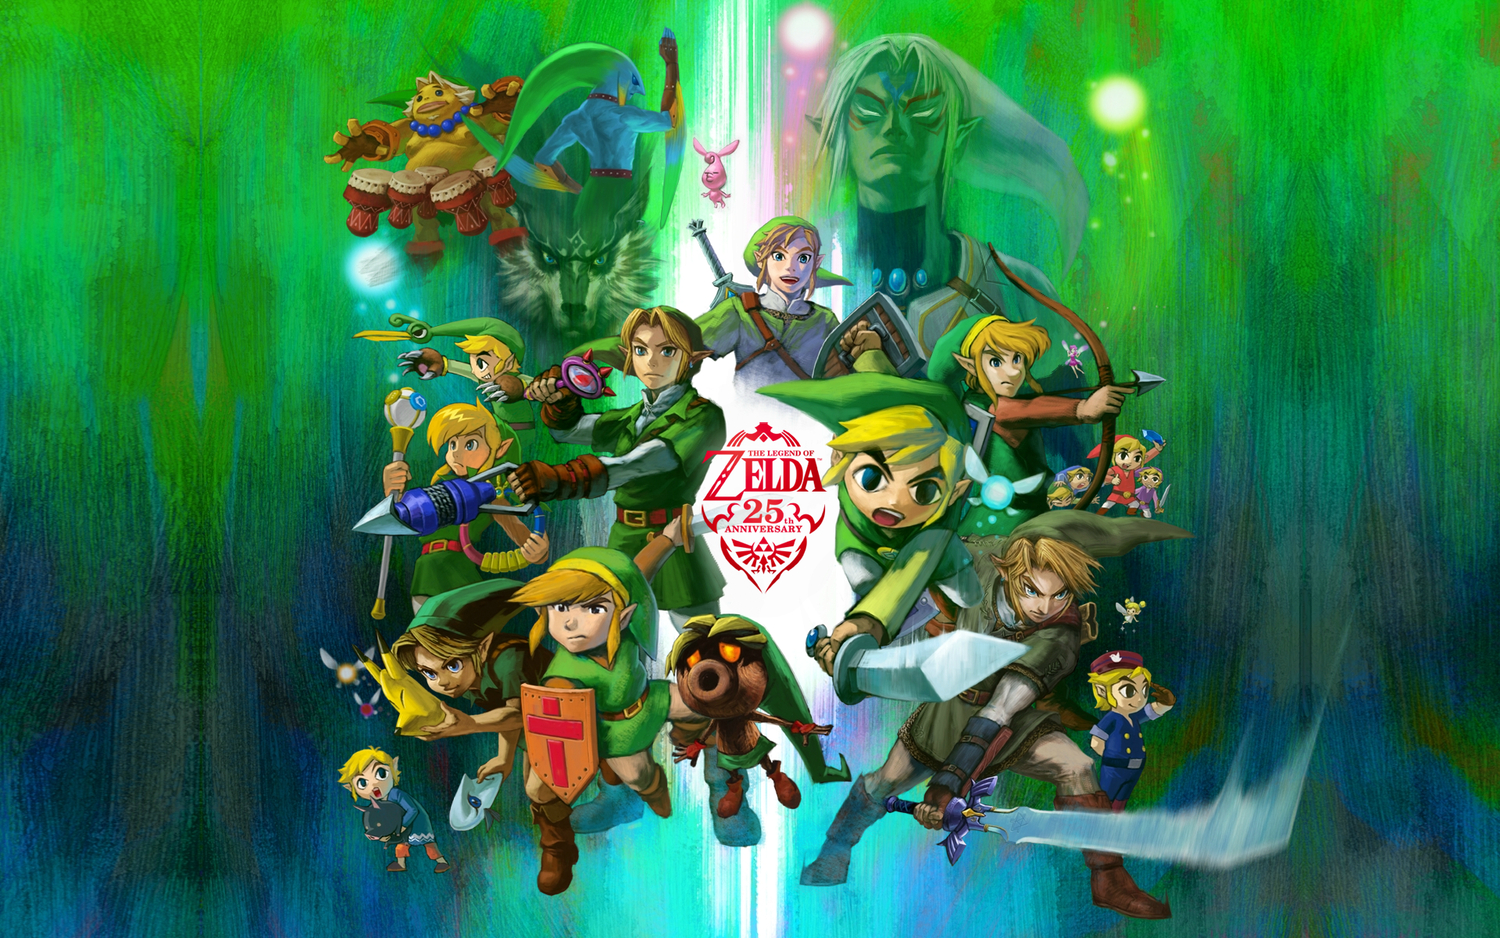 The Legend of Zelda could be Nintendo's next mobile game after Animal Crossing, new Pokémon TCG app planned